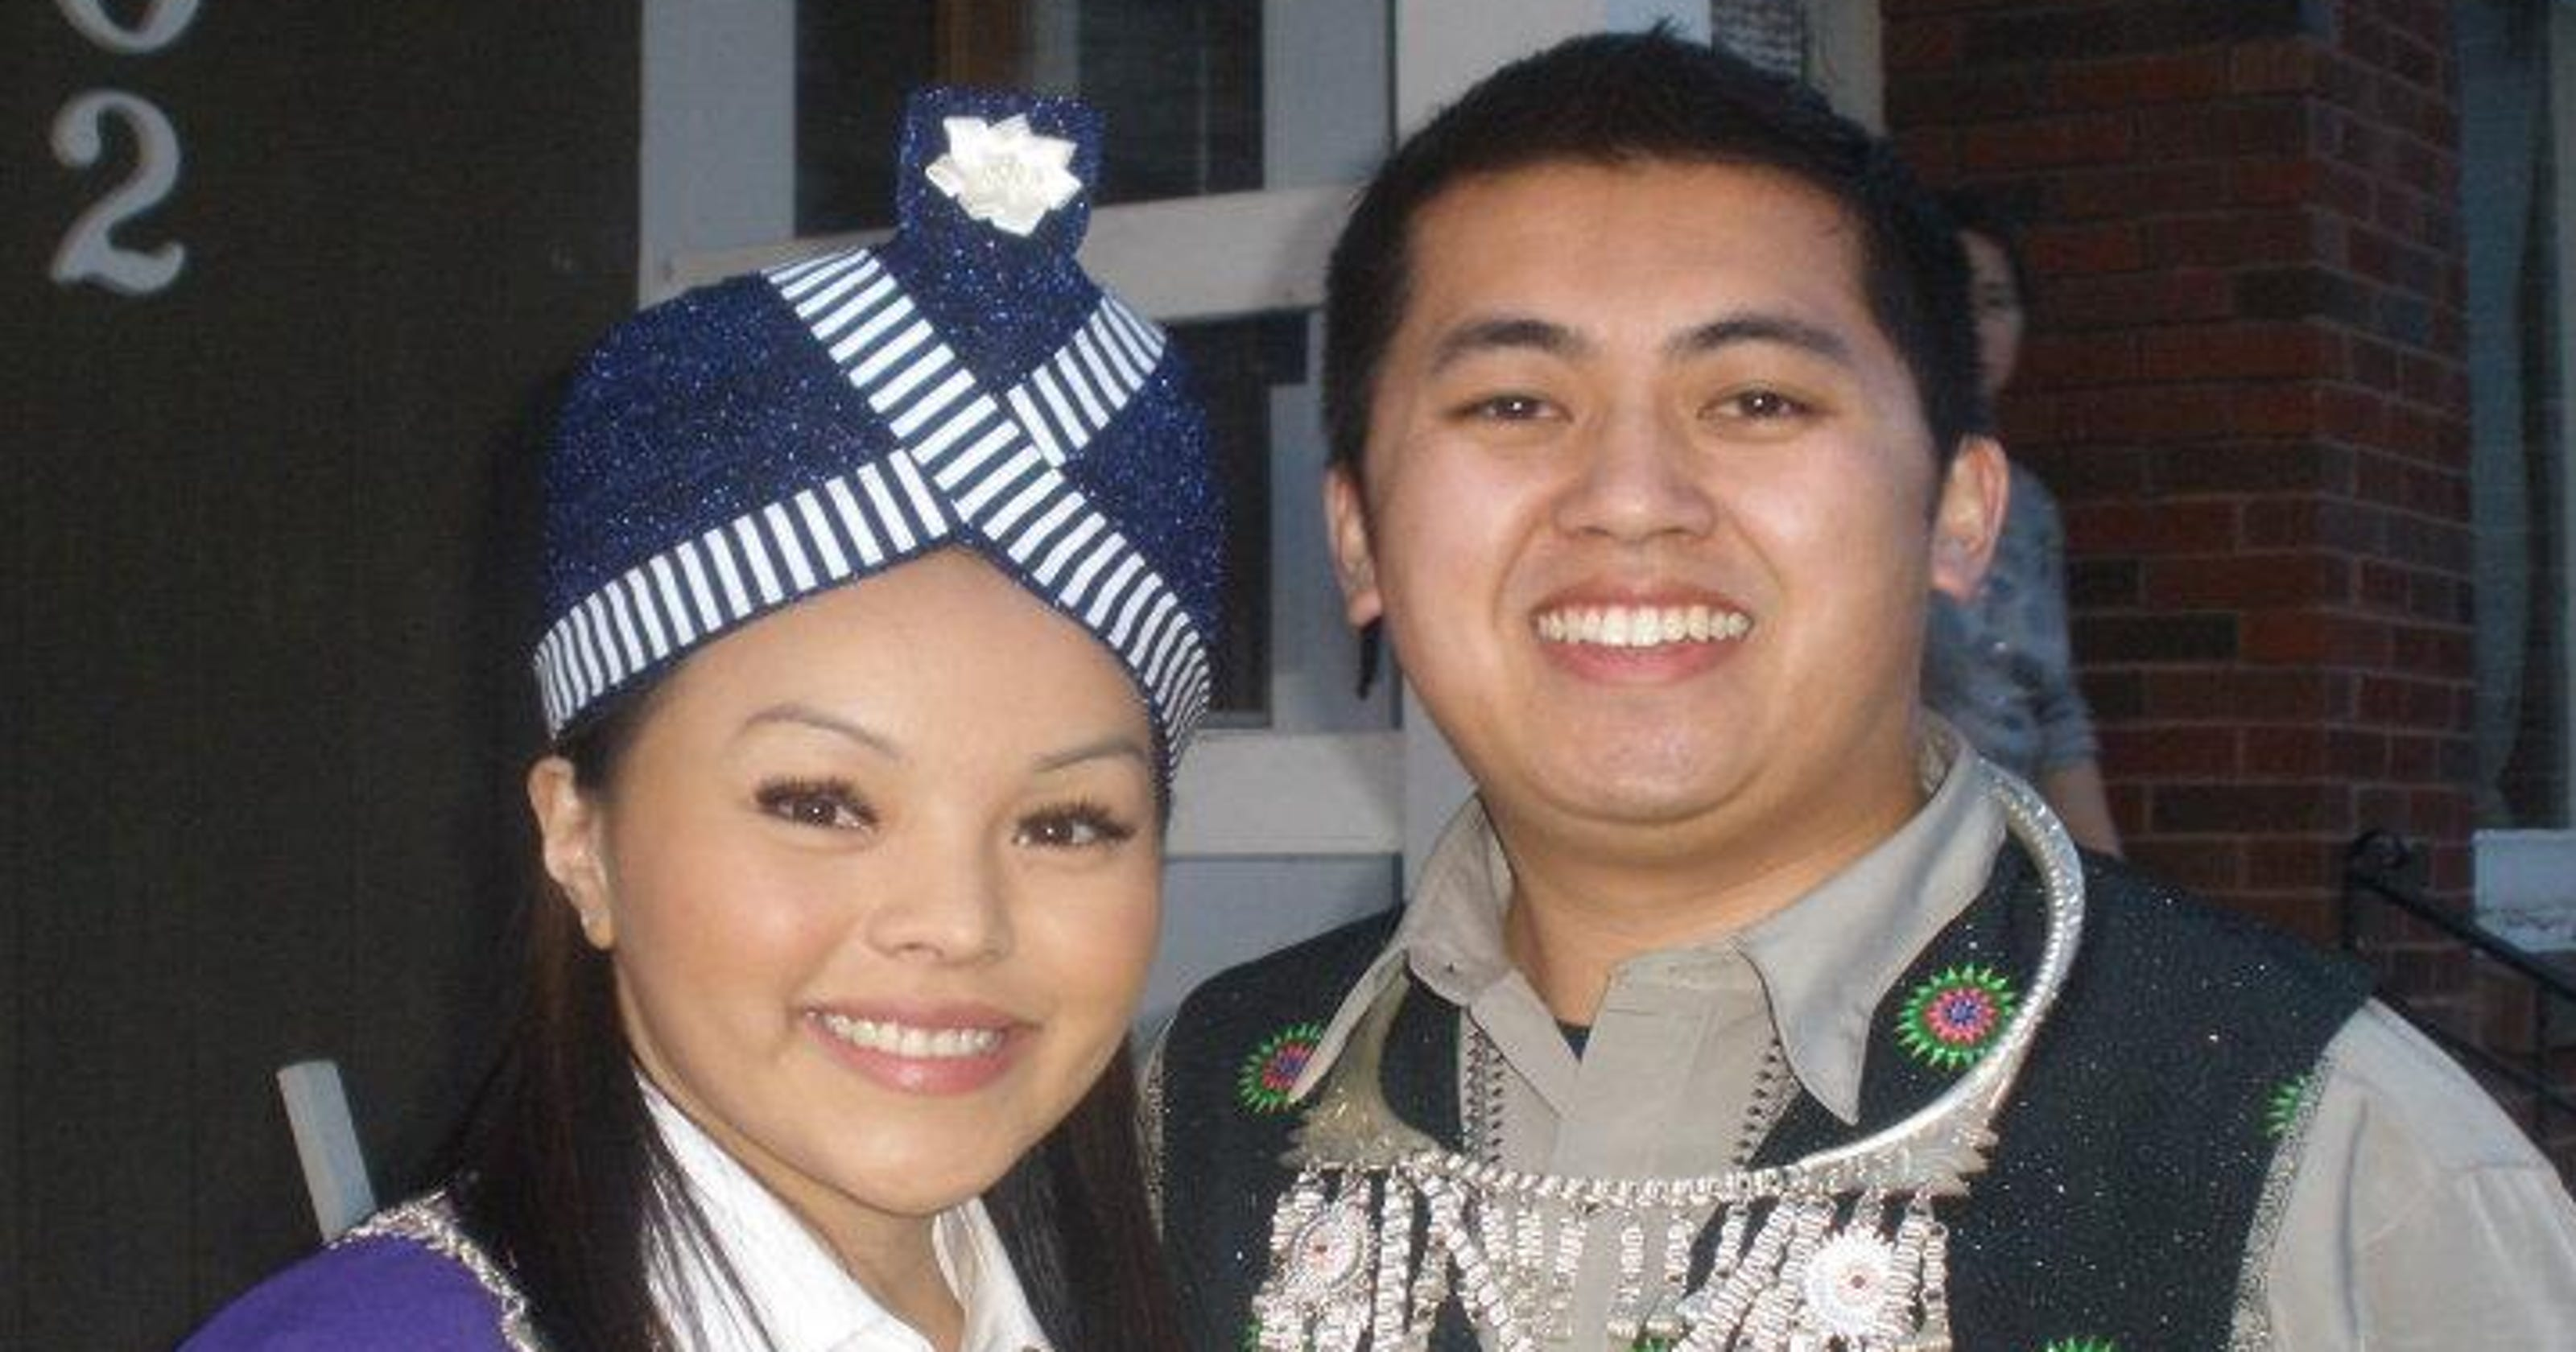 Hmong leaders seek to legalize cultural weddings